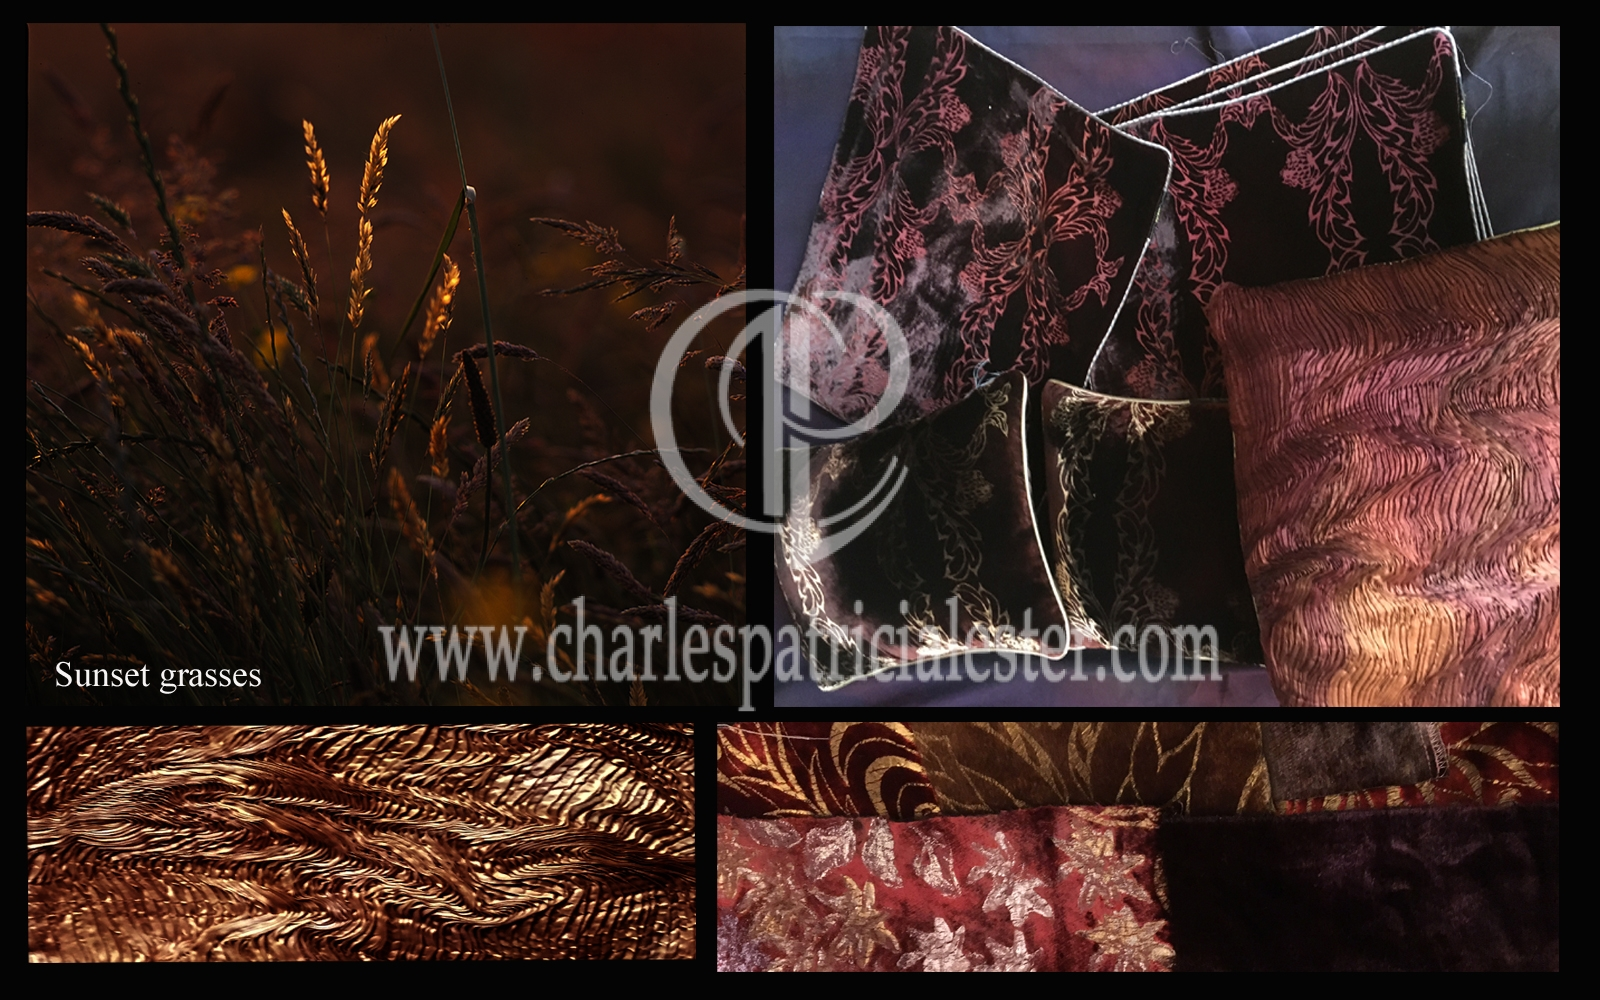 Sunset grasses inspires rich browns in velvet and silks